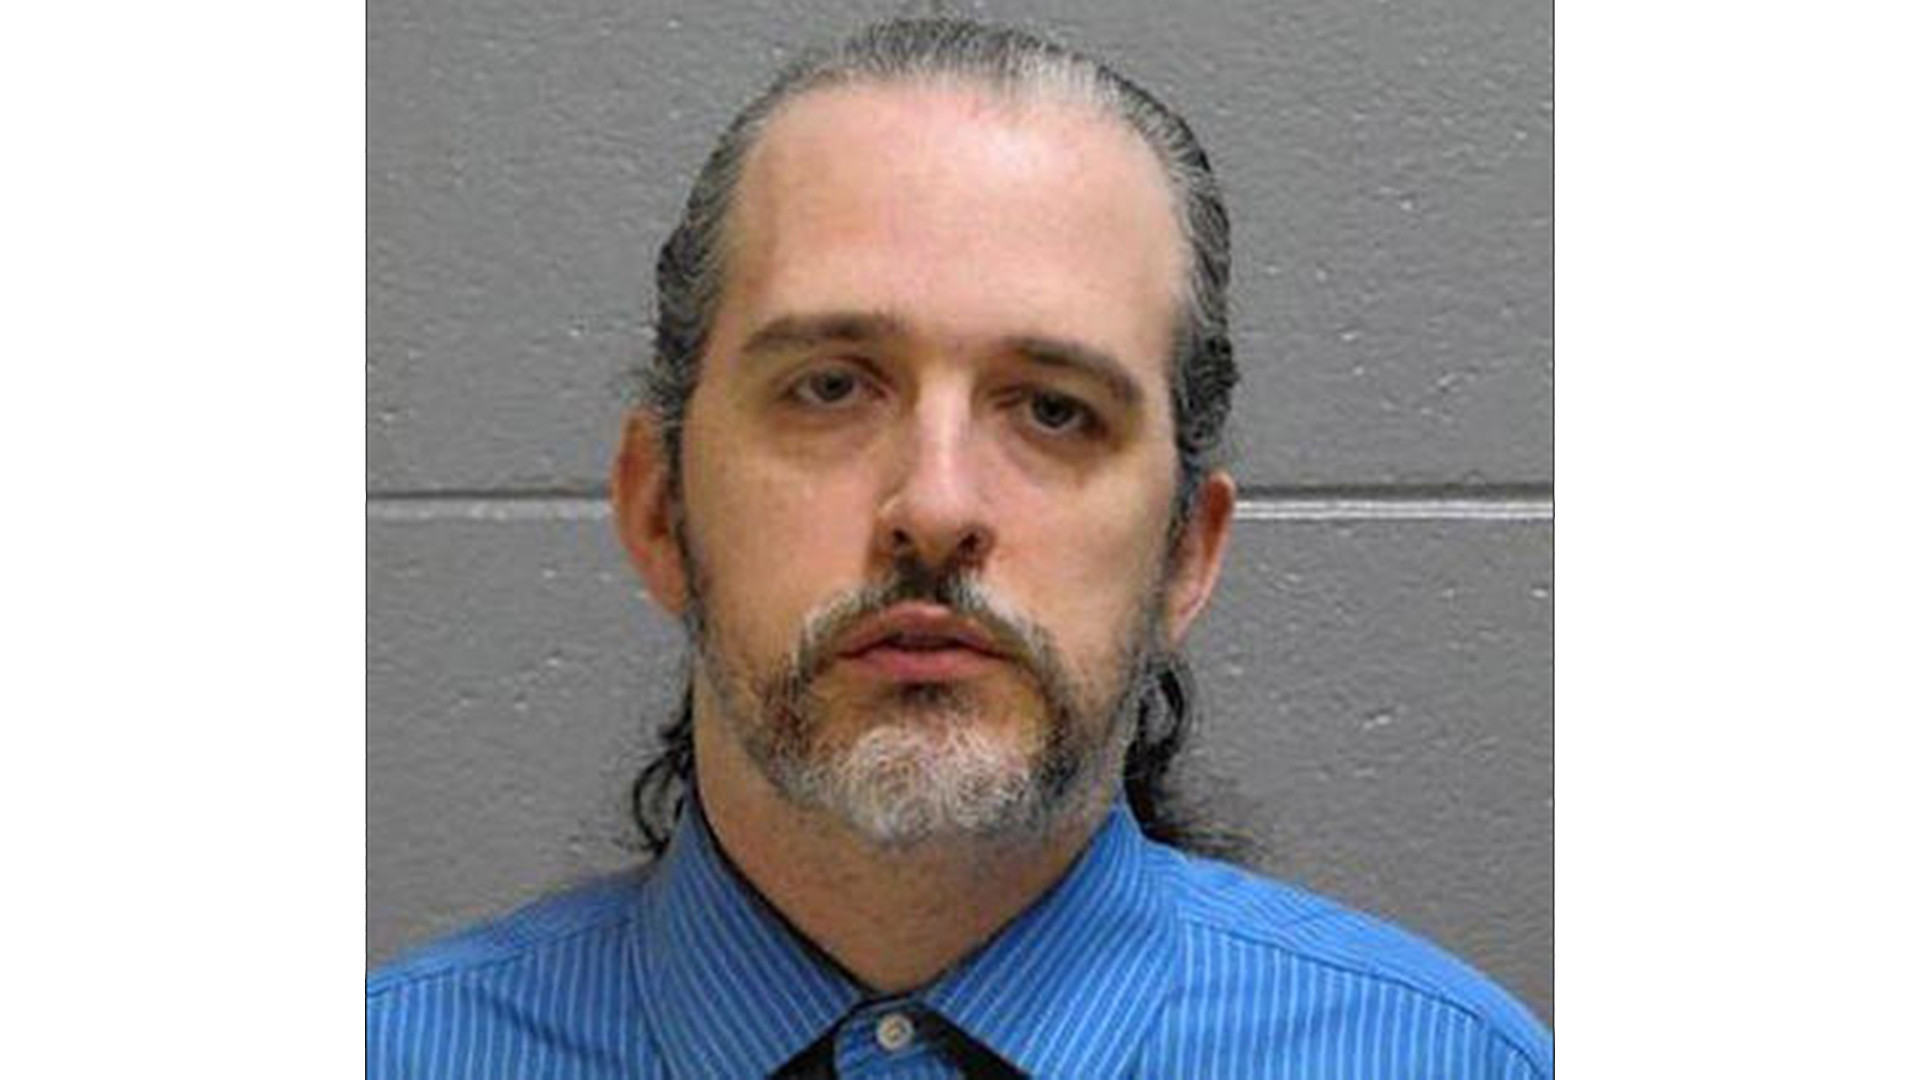 Man Who Posed As Psychiatrist At Chicago Clinic Given 13 Years In